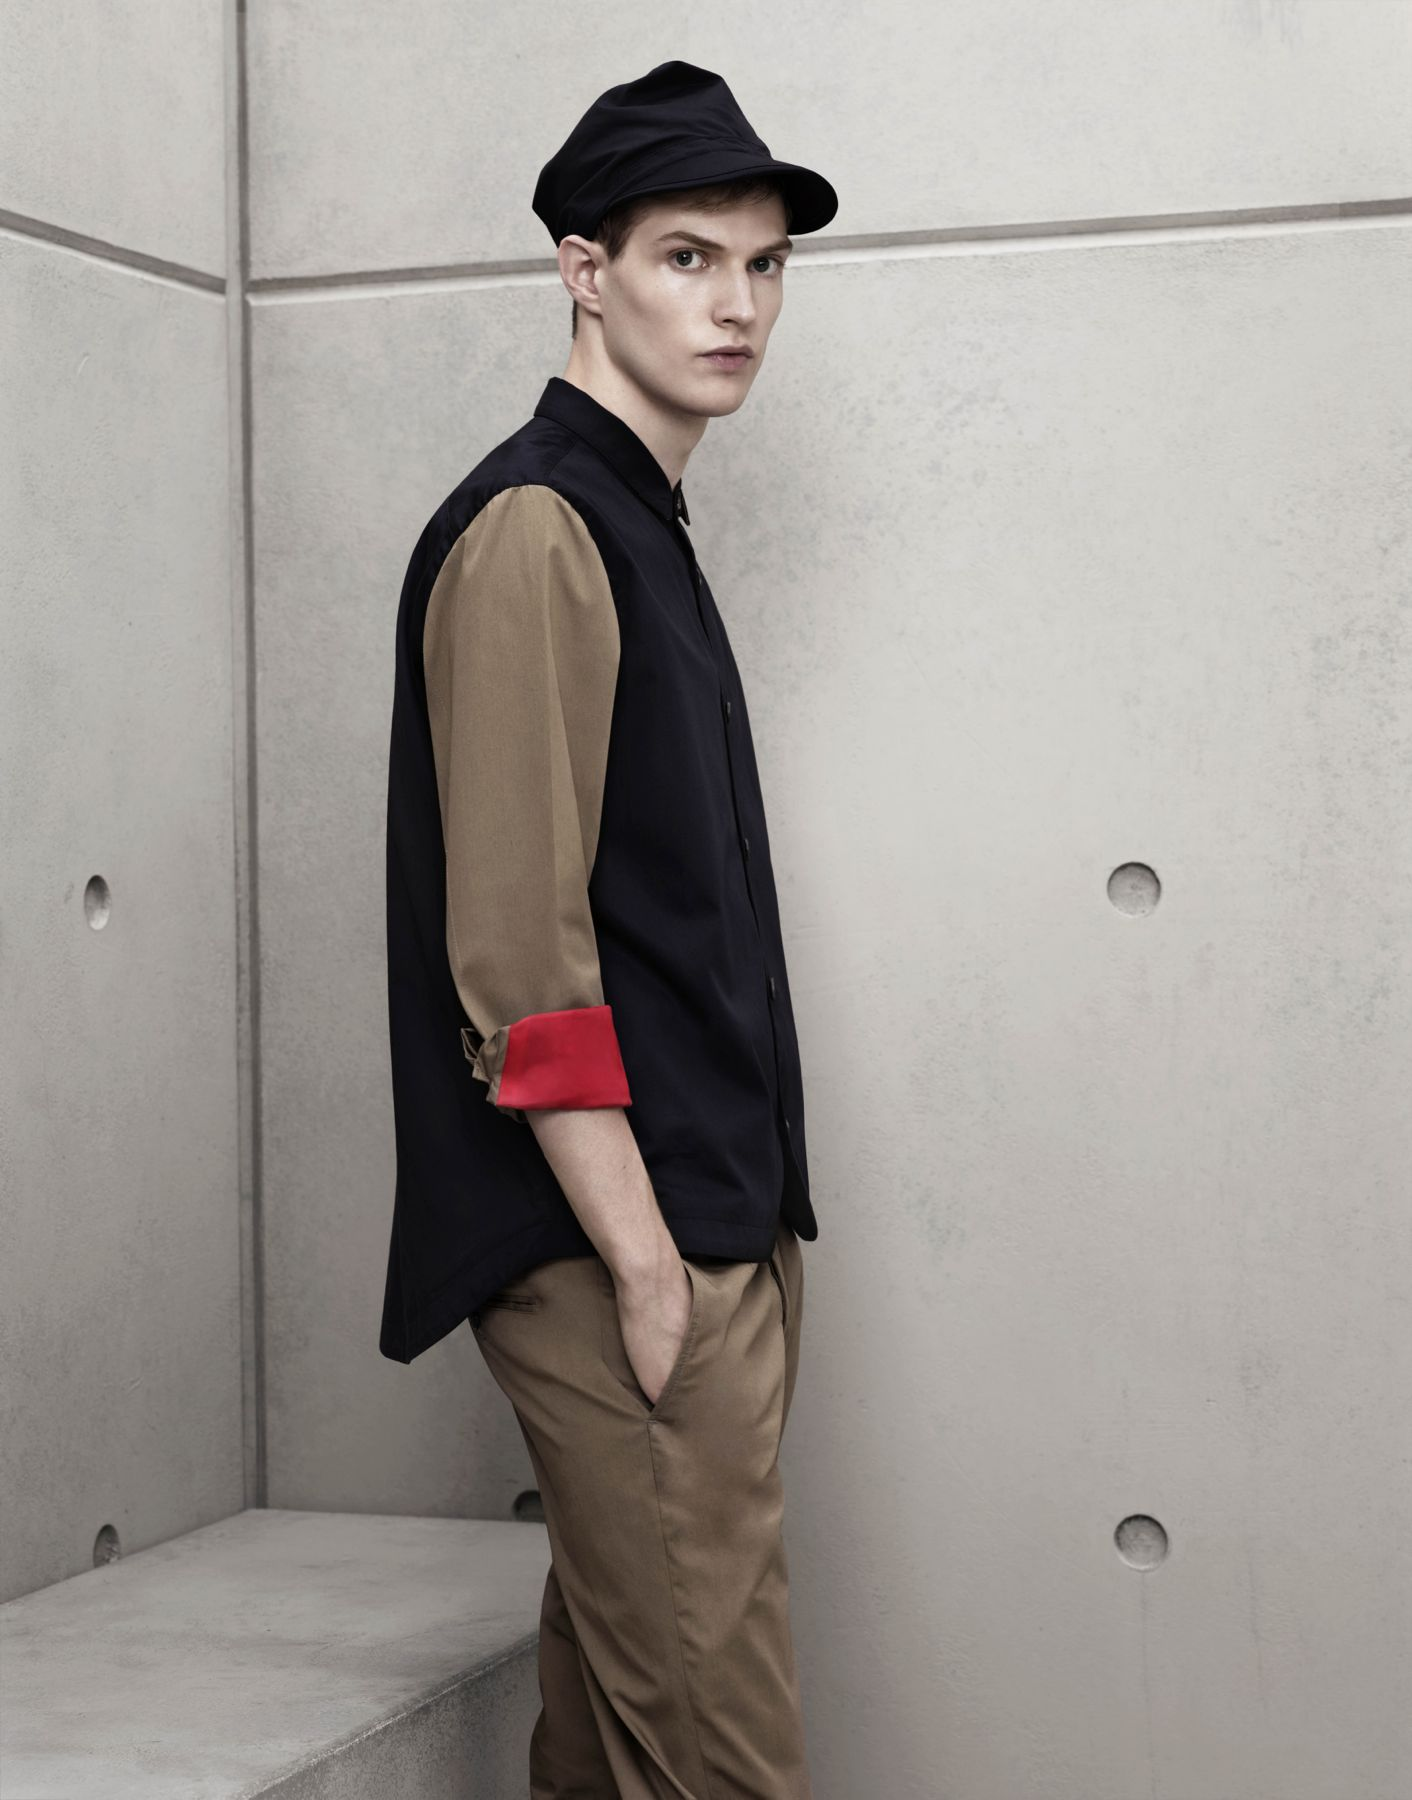 Marni Men's Collection for H&M